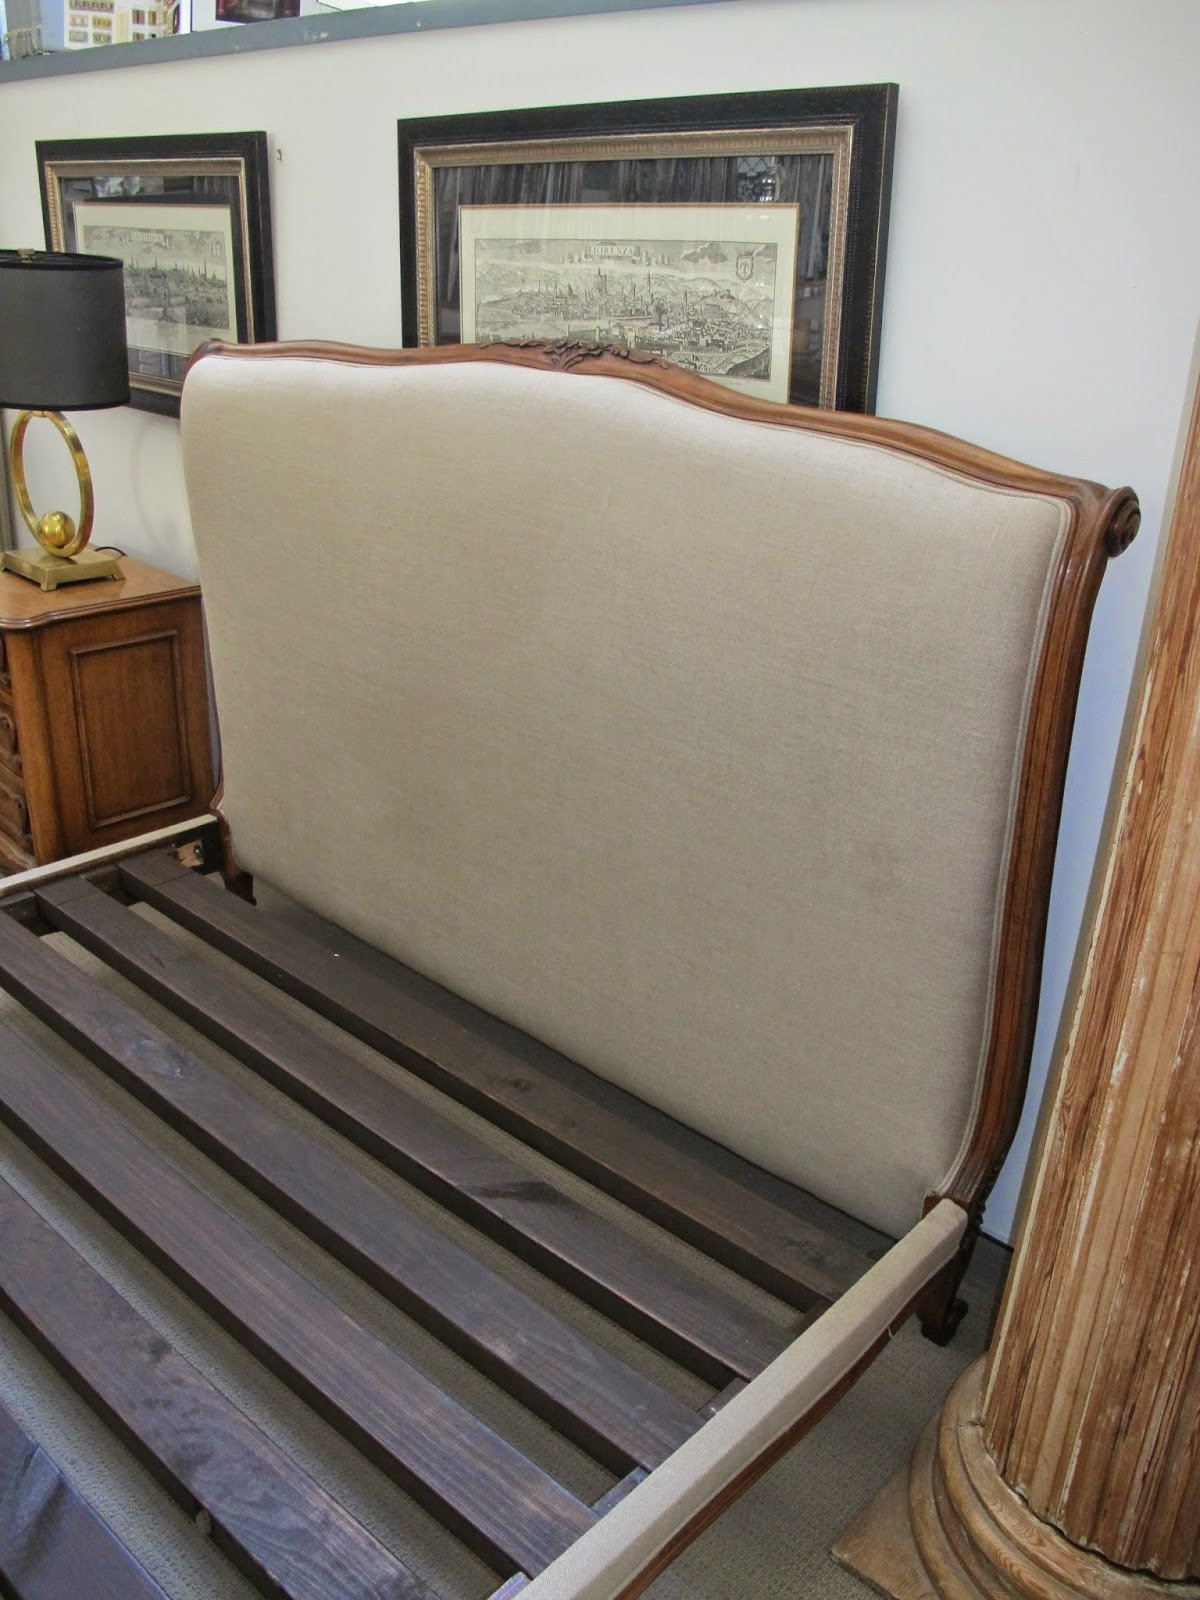 Bedhead Design custom made bedheads and upholstered complete beds and sleigh beds